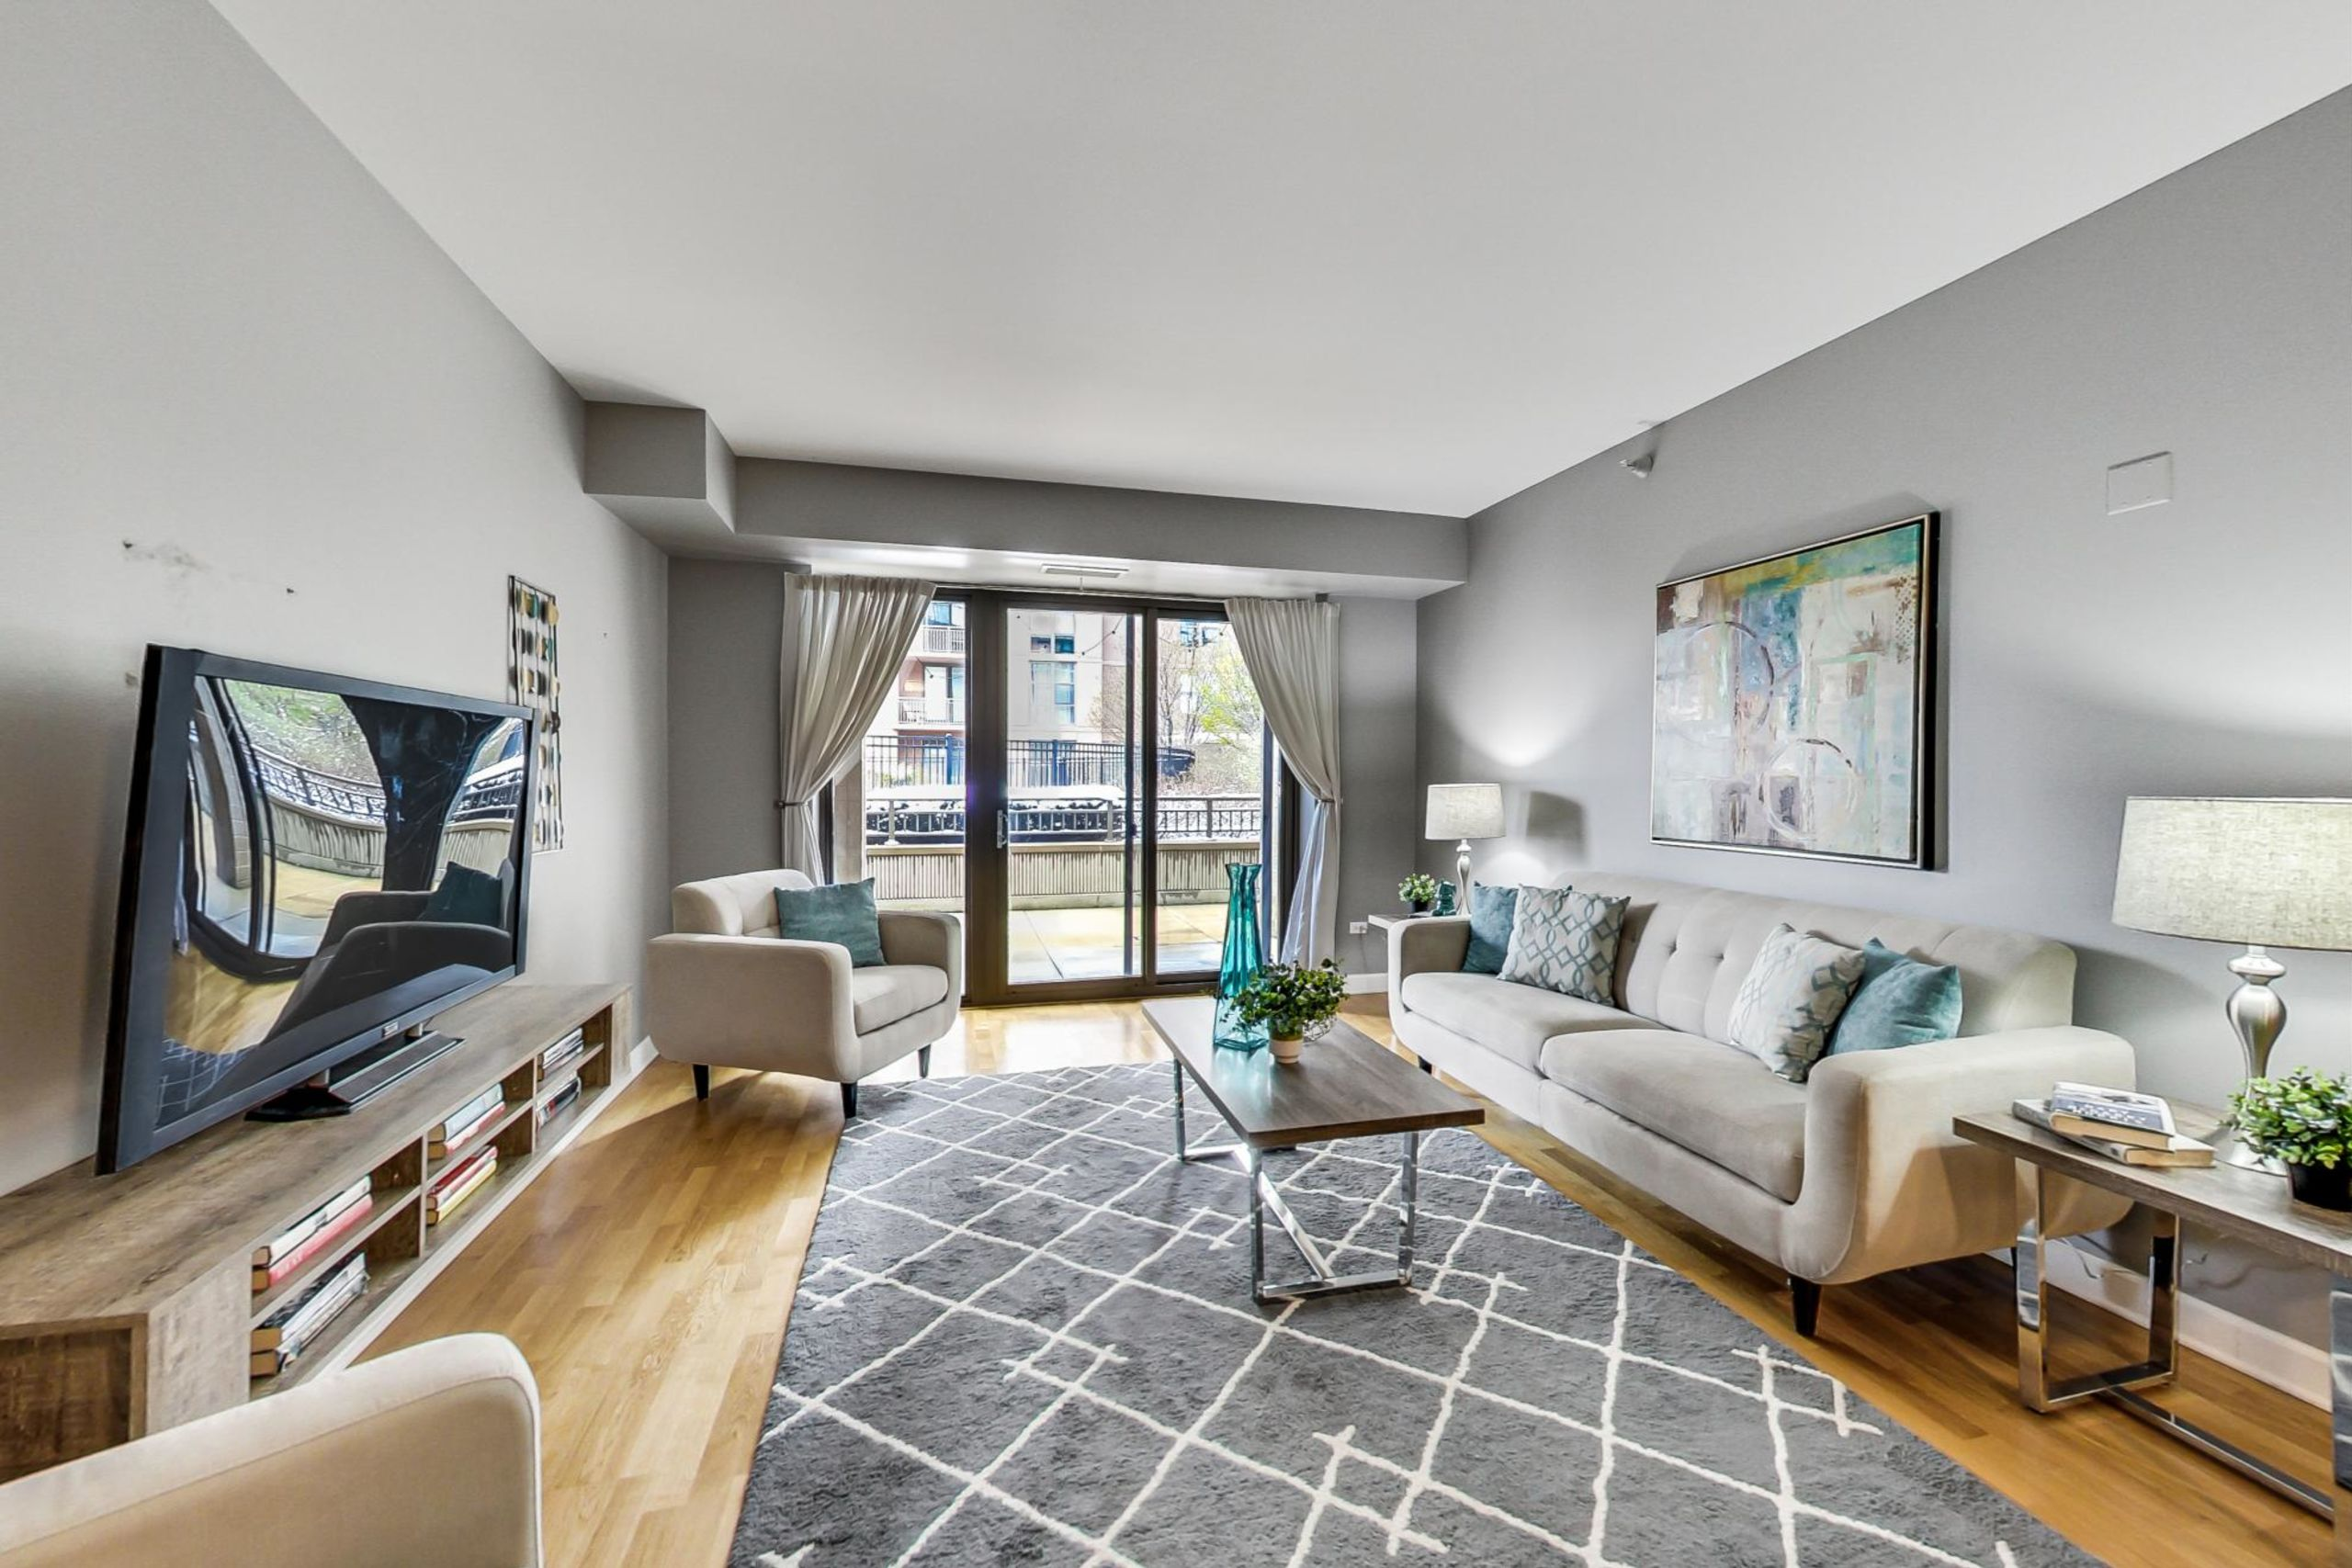 1111 S. State #402 - FOR SALE